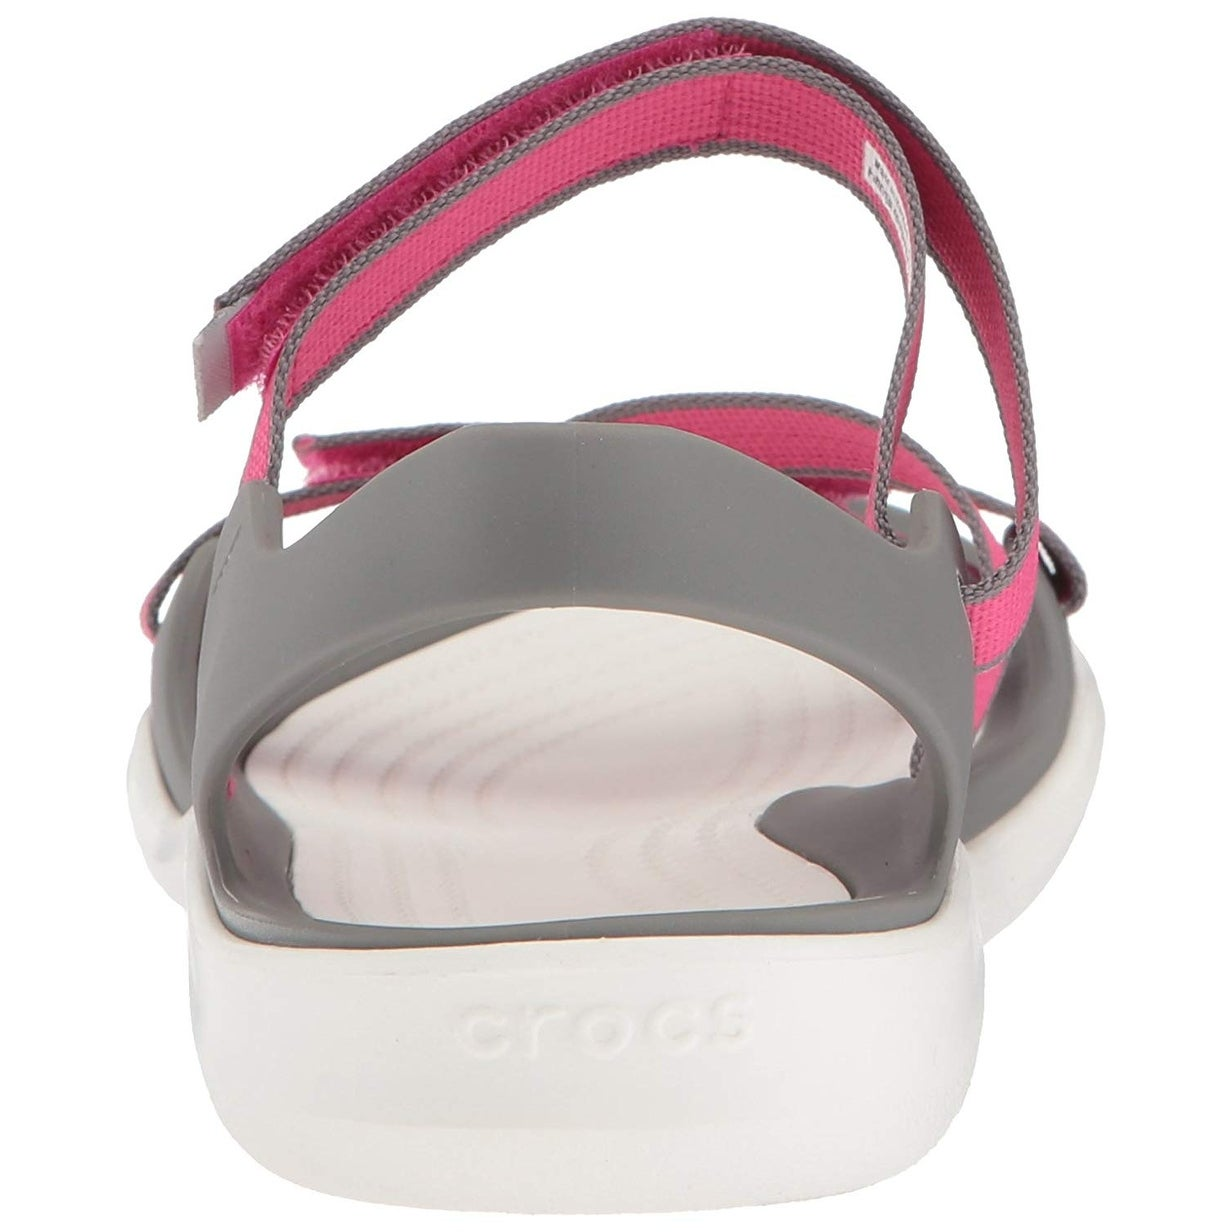 7c2b2f26c7f2 Shop Crocs Women s Swiftwater Webbing Sandal - Free Shipping On Orders Over   45 - Overstock - 22342589